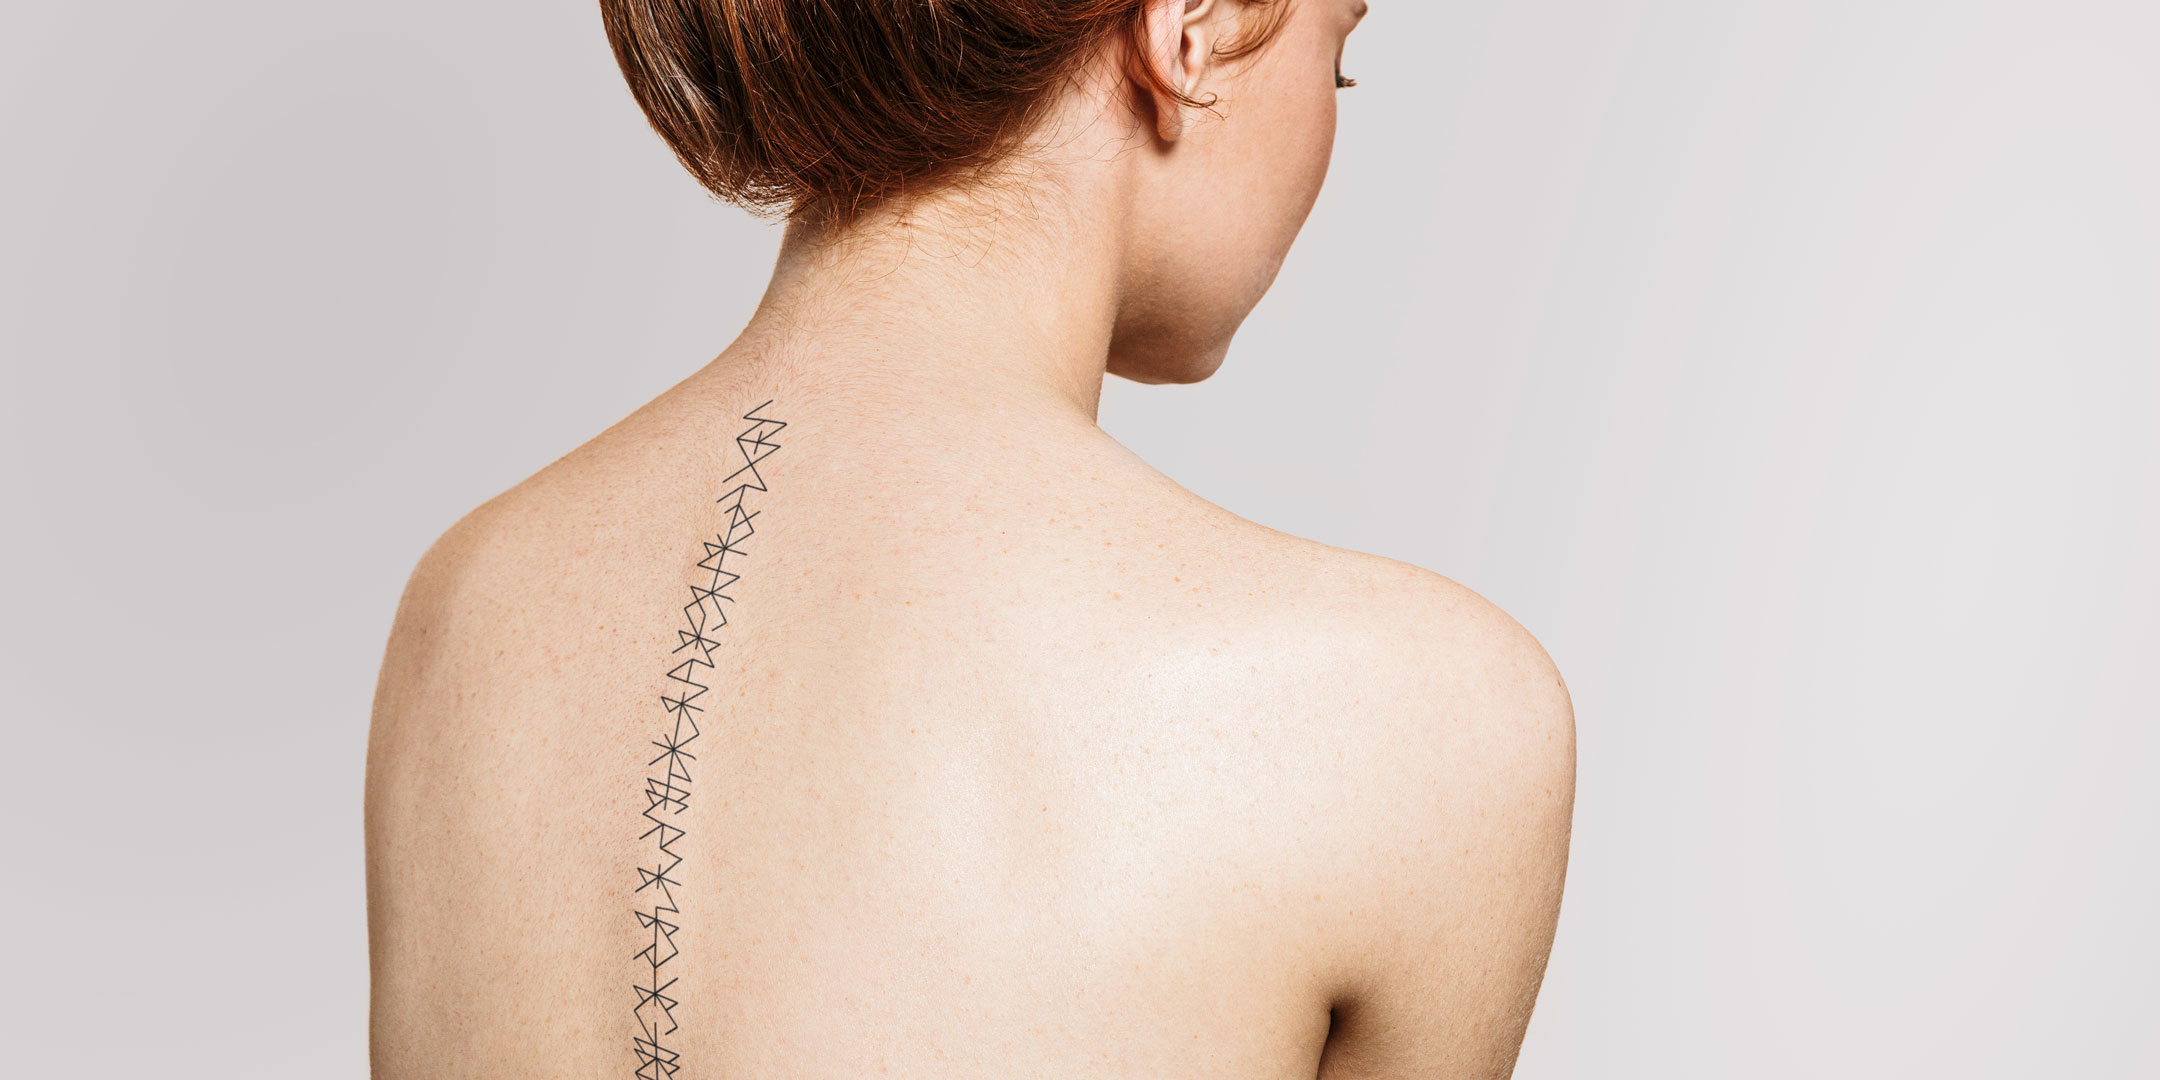 abstract words along back spine by Discreet Tattoos